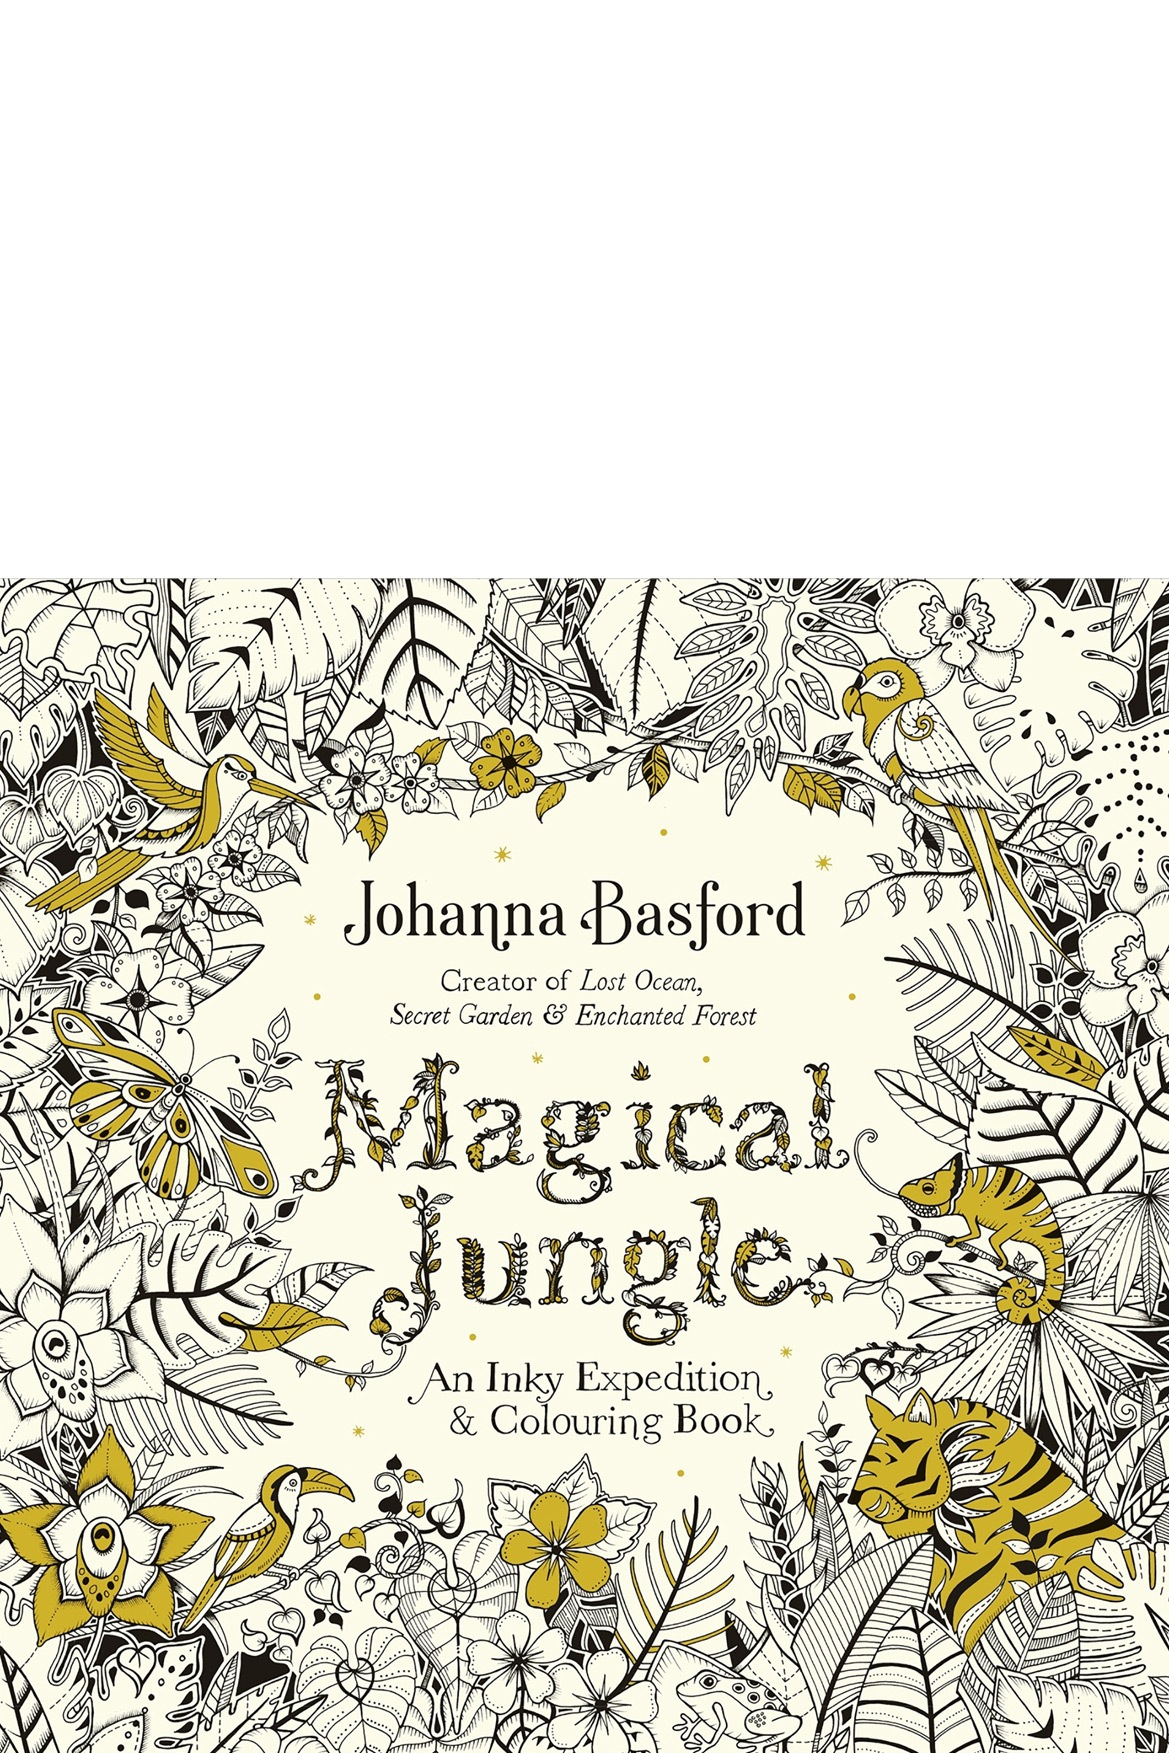 Magical Jungle An Inky Expedition Colouring Book By Johanna 431410060 Zm 1 Jungle3A Basford